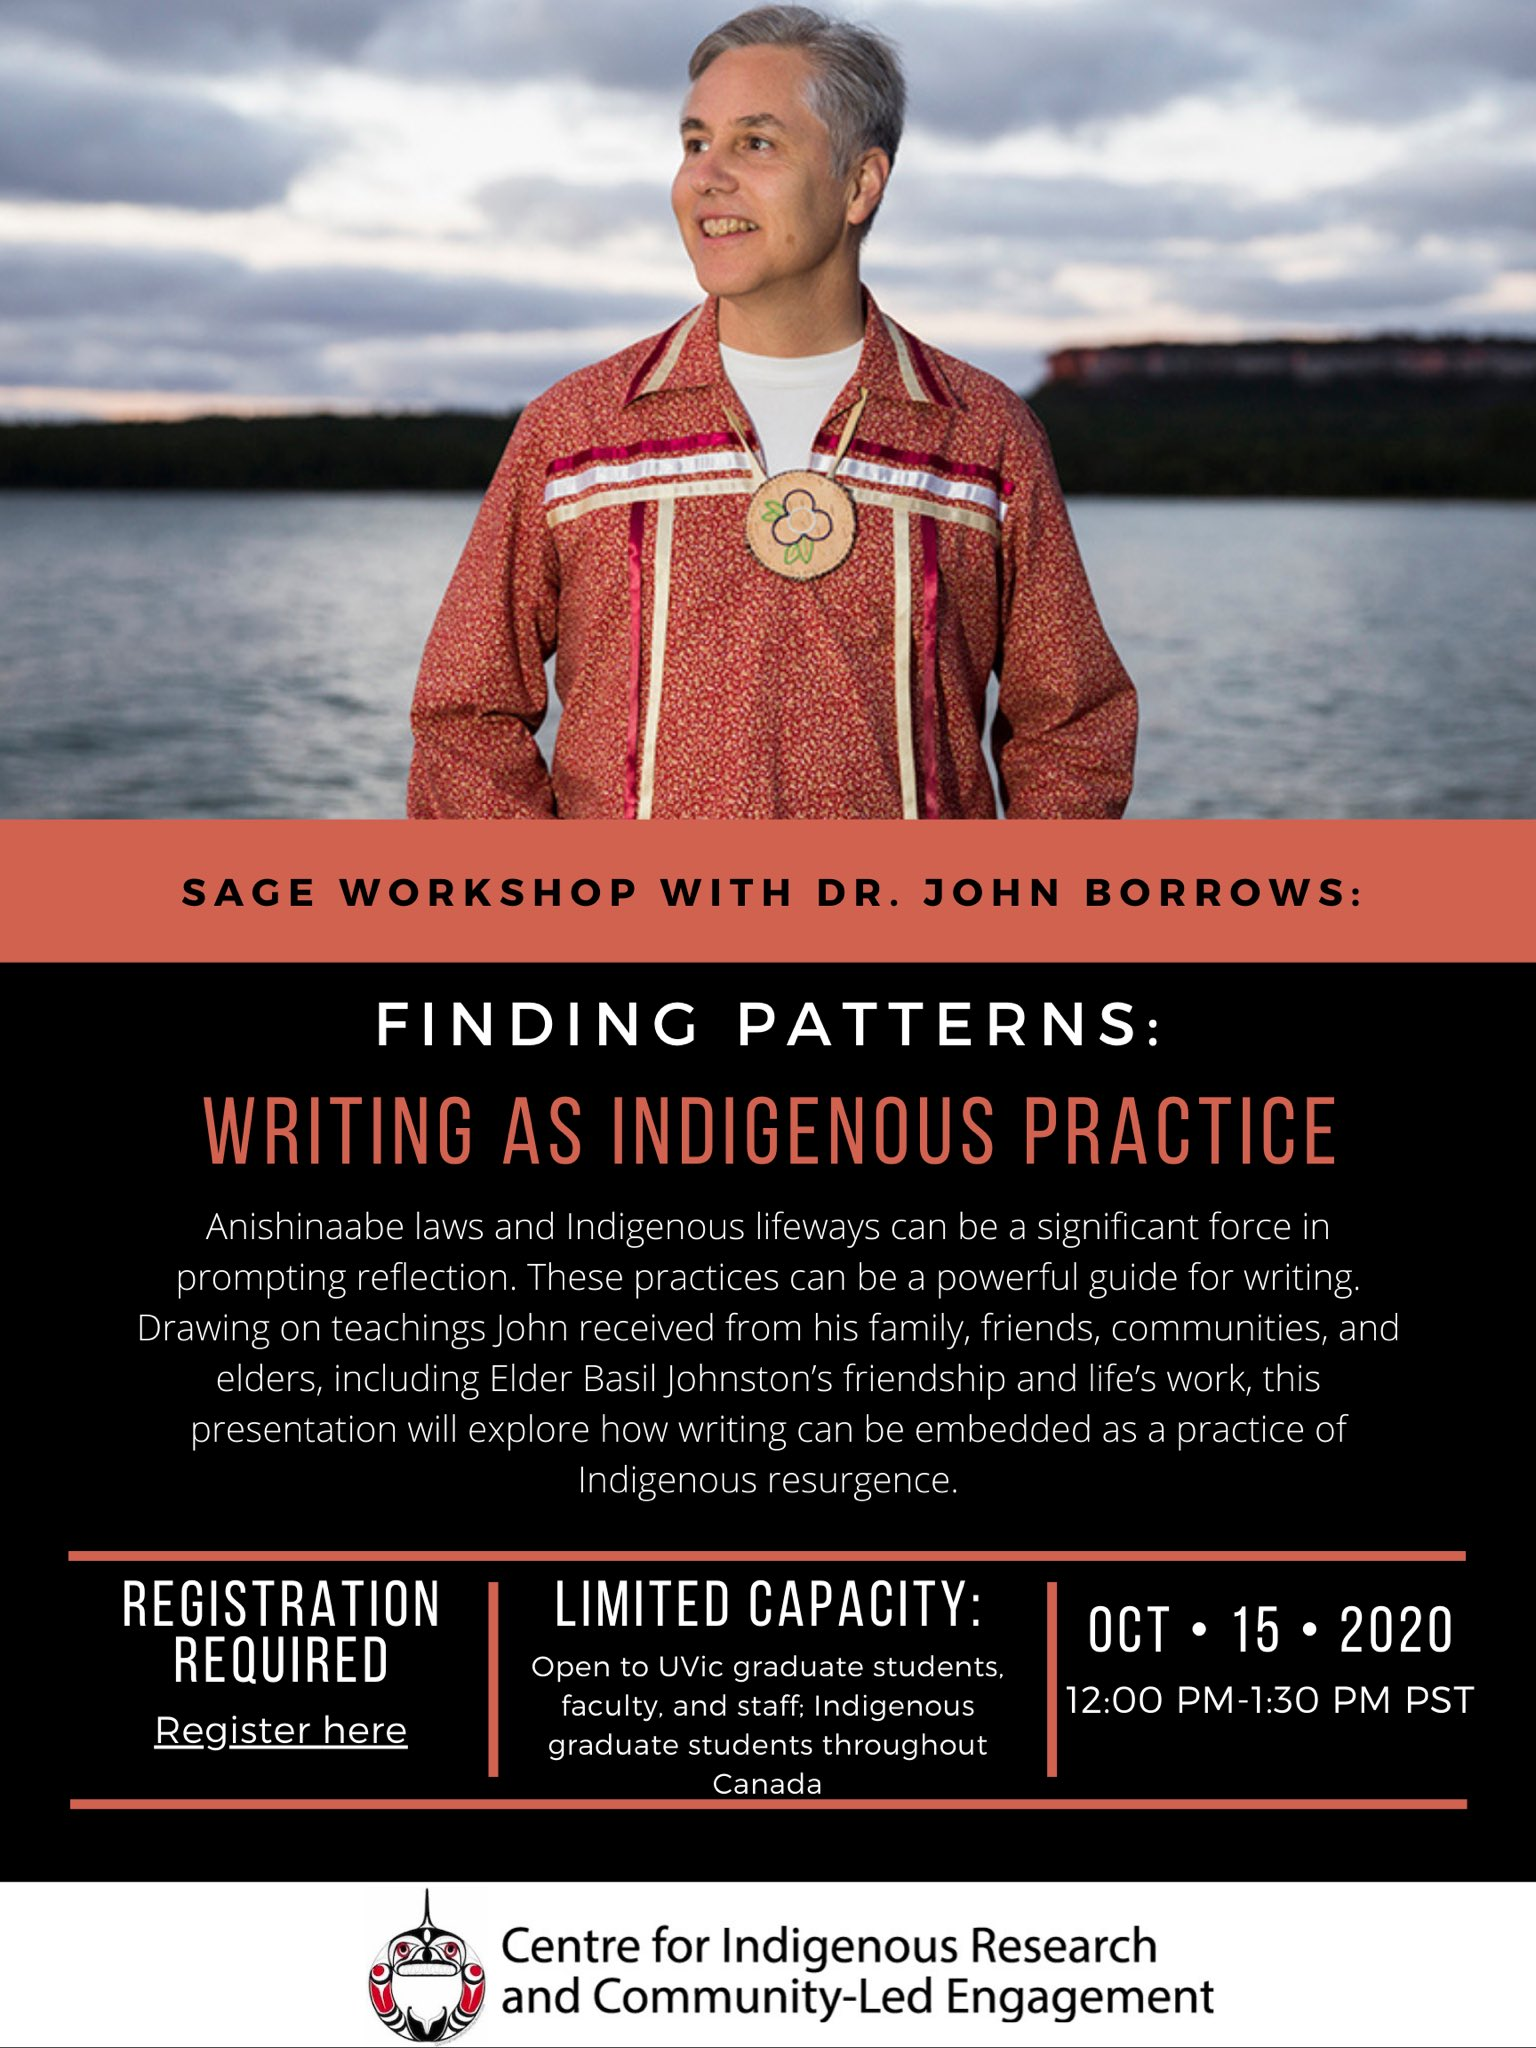 """CIRCLE - UVic on Twitter: """"This Thursday, CIRCLE UVic is excited to have  Dr. John Borrows joining us for a SAGE workshop titled """"Finding Patterns:  Writing as Indigenous Practice"""". Follow this link to register  https://t.co/WkM7CqoOVR… https://t.co ..."""